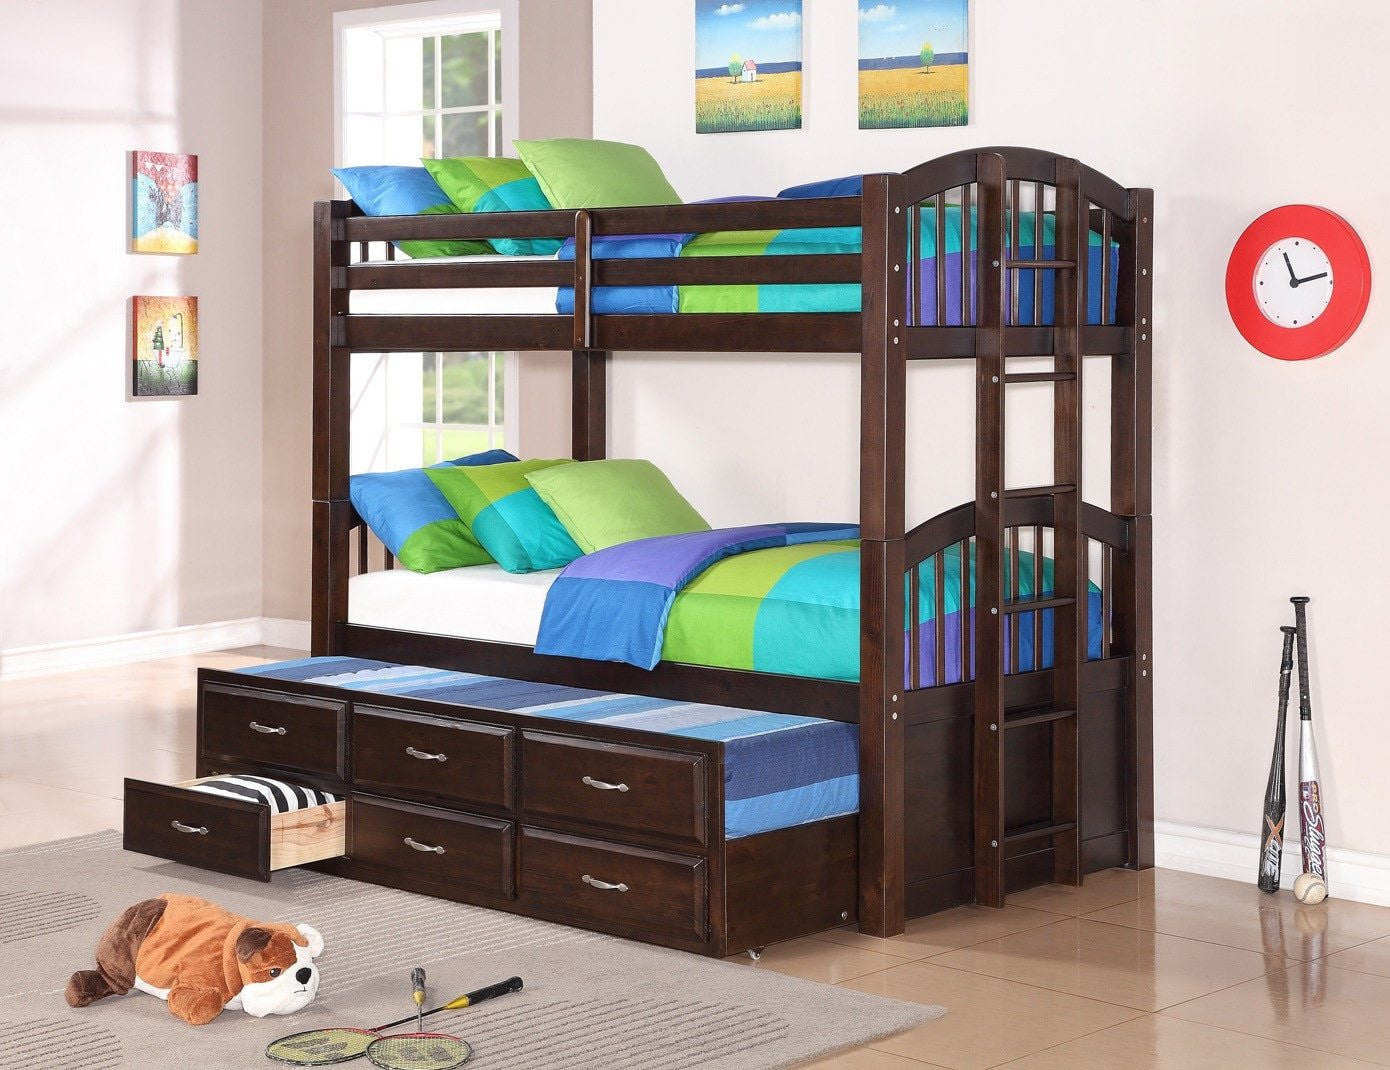 Wood Twintwin Bunk Bed Wtrundle Bed Drawers Espresso Pacific